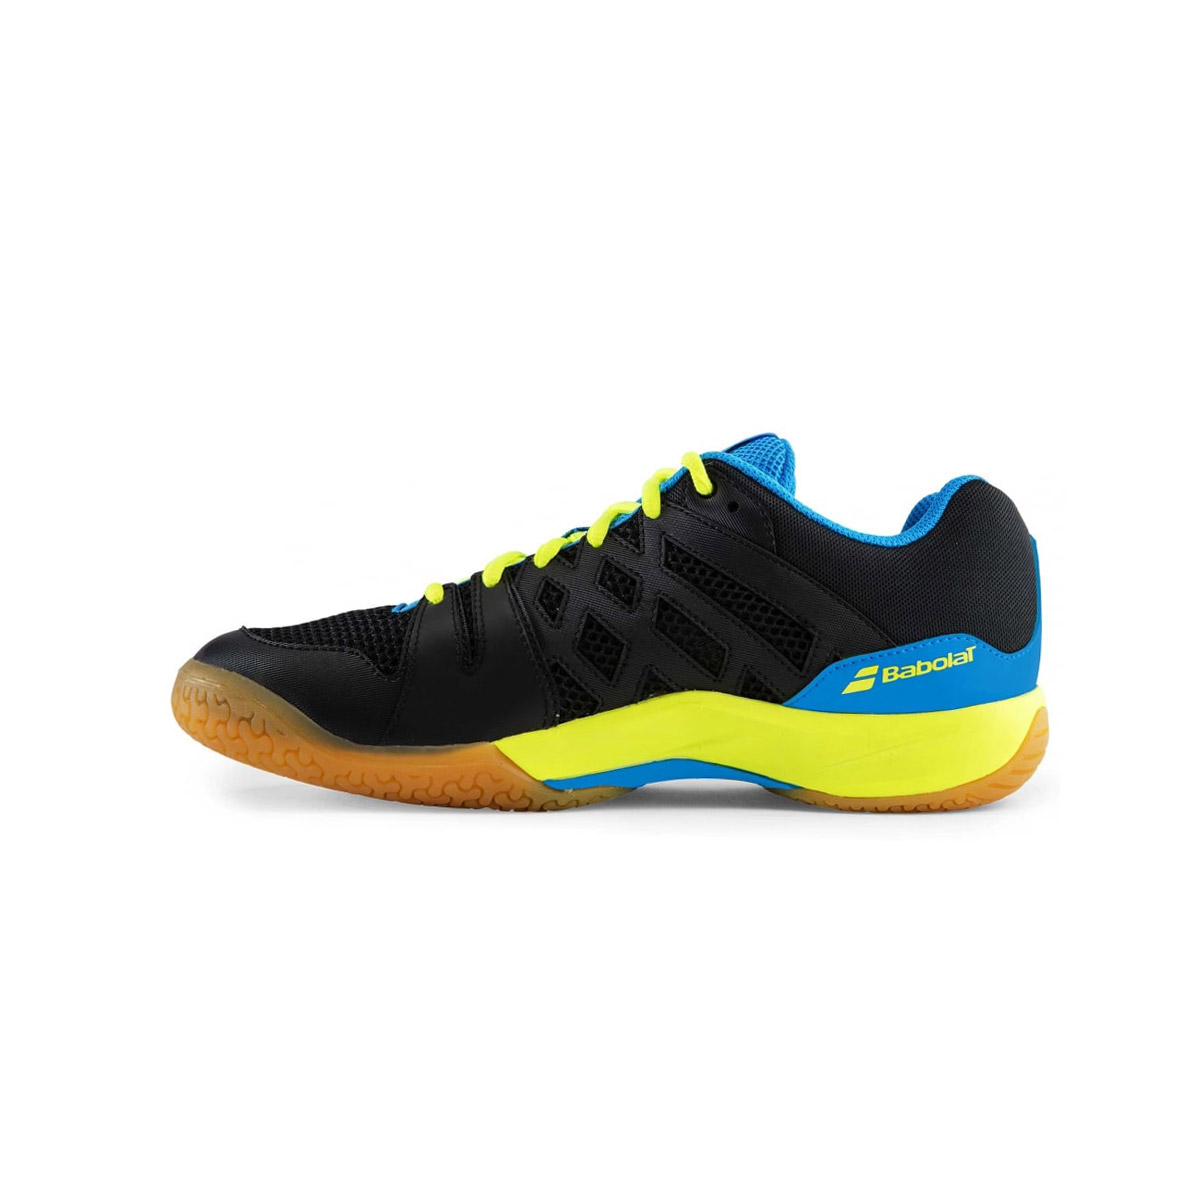 Babolat Womens Badminton Shoes